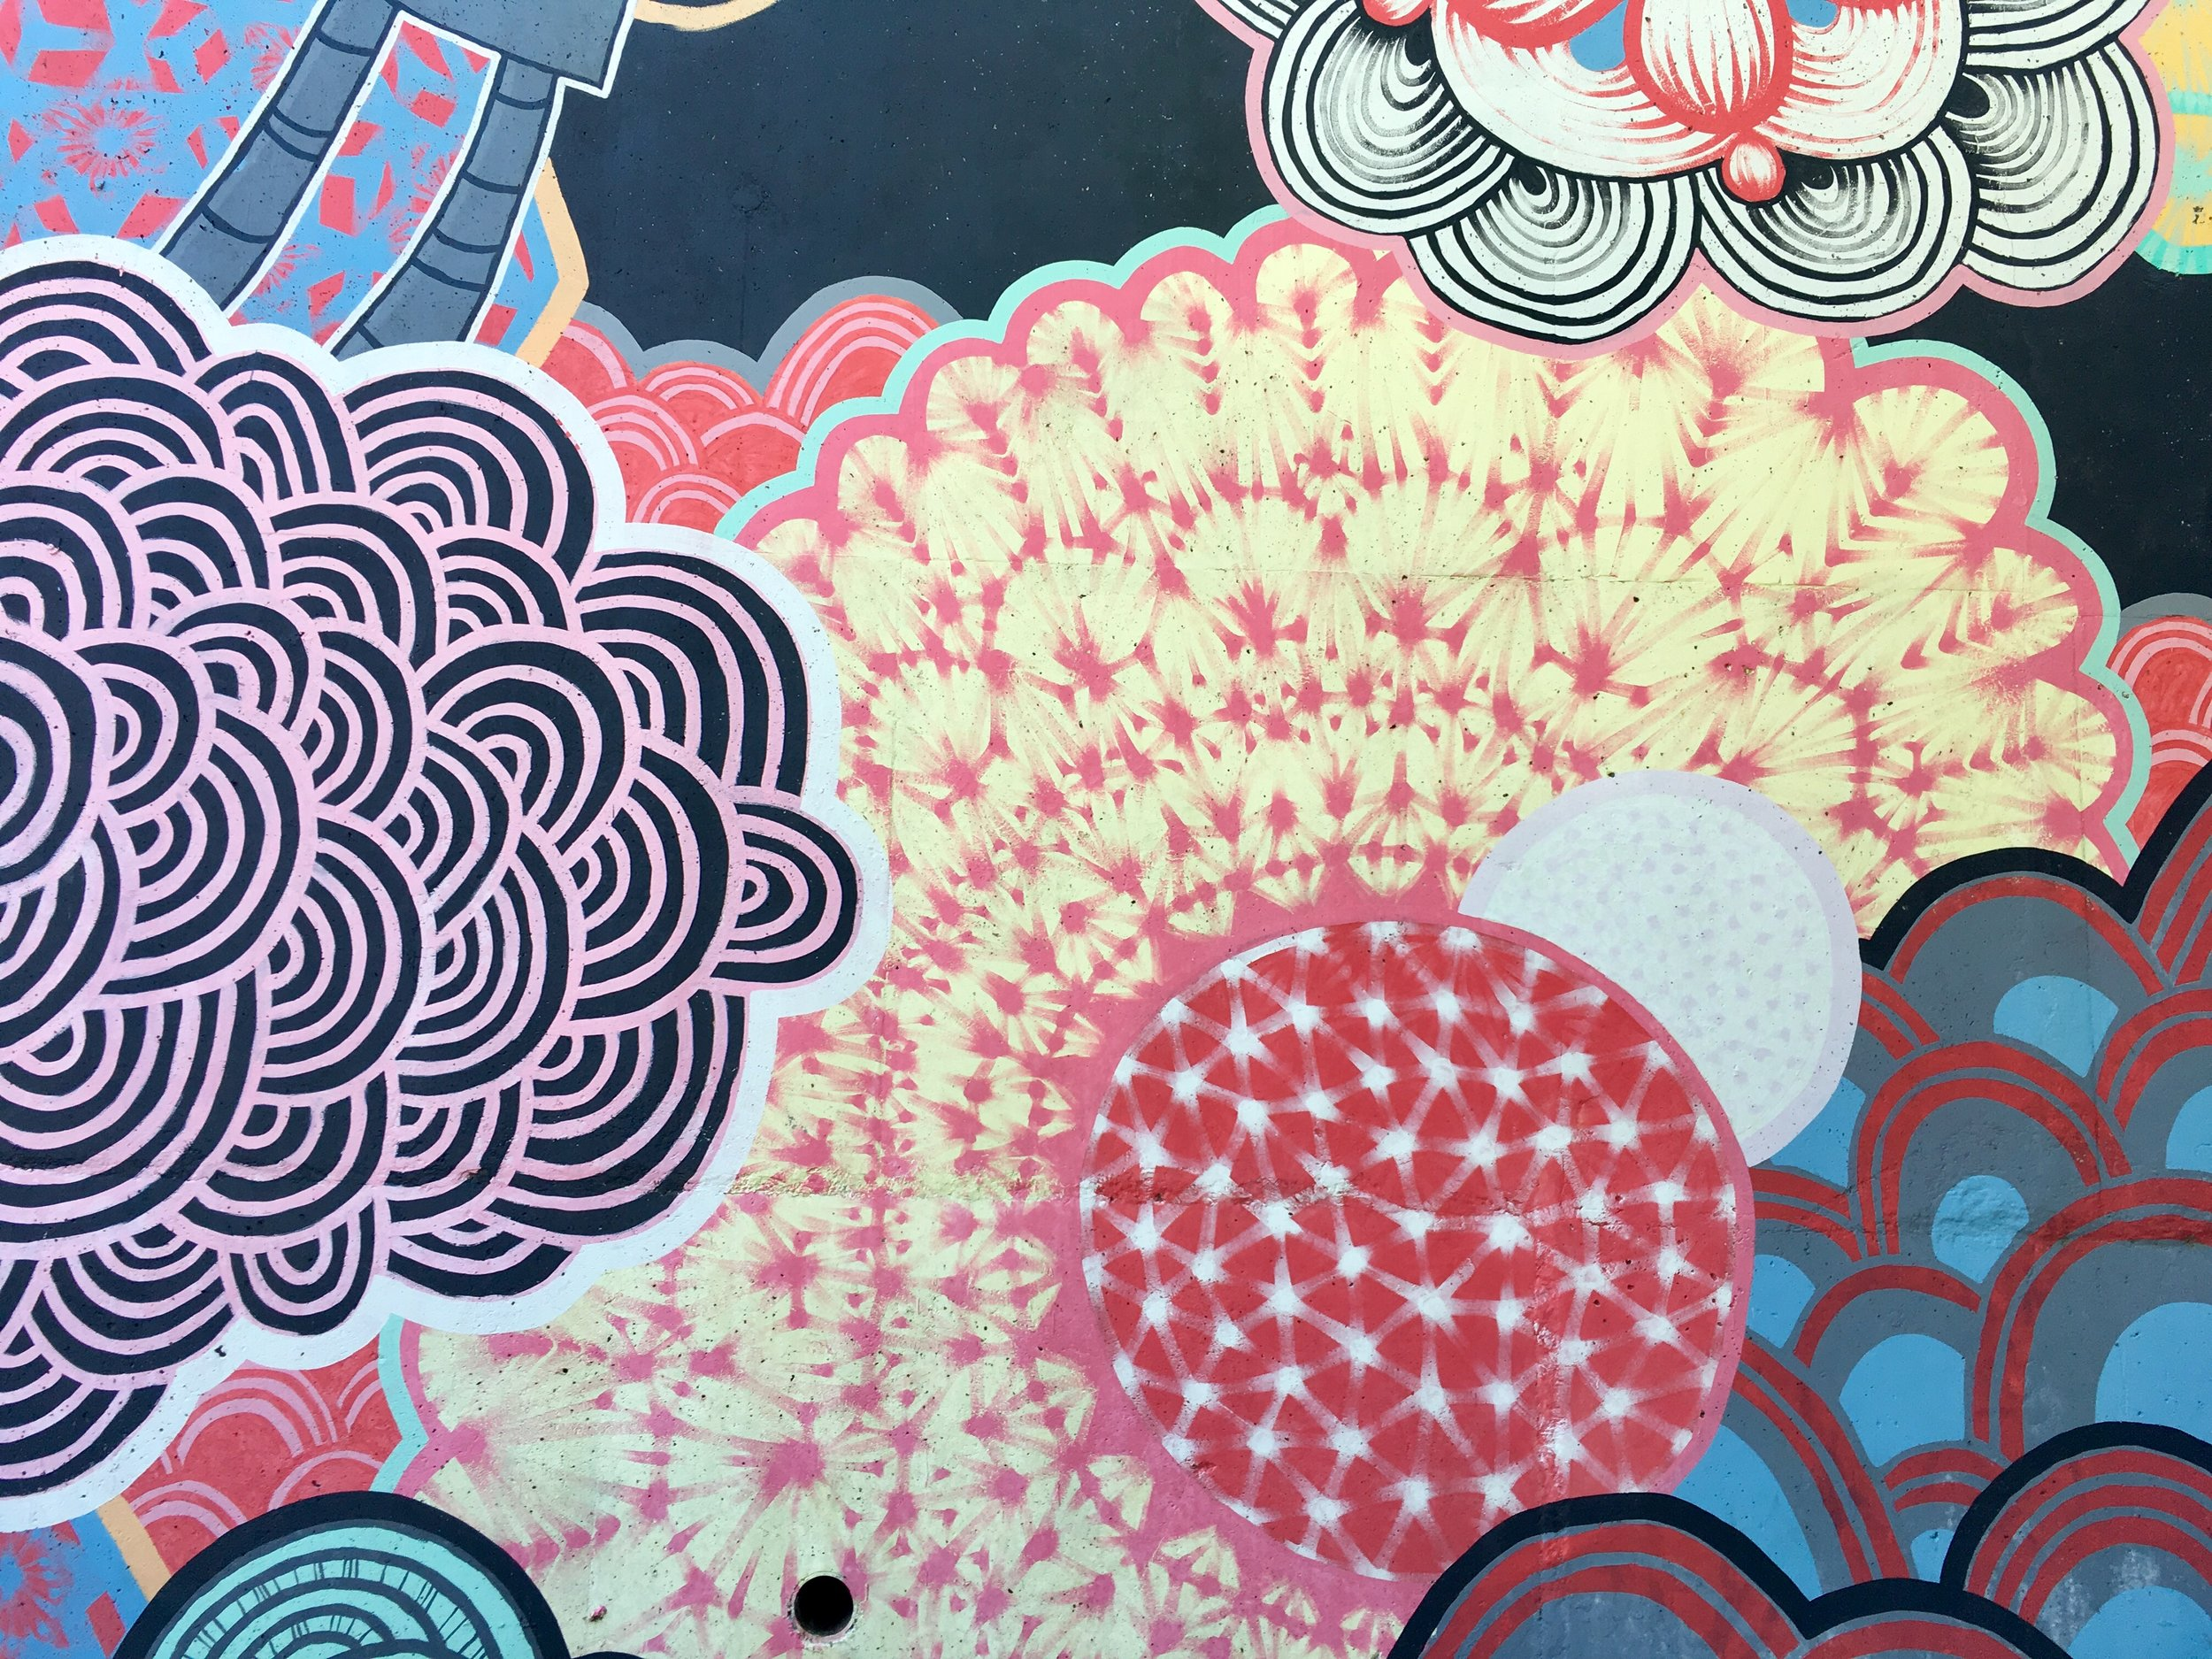 [Photo of a mural in Atlanta filled with abstract flower-like shapes in pinks, reds, blues, blacks, whites and mint green. Photo by  MM .]